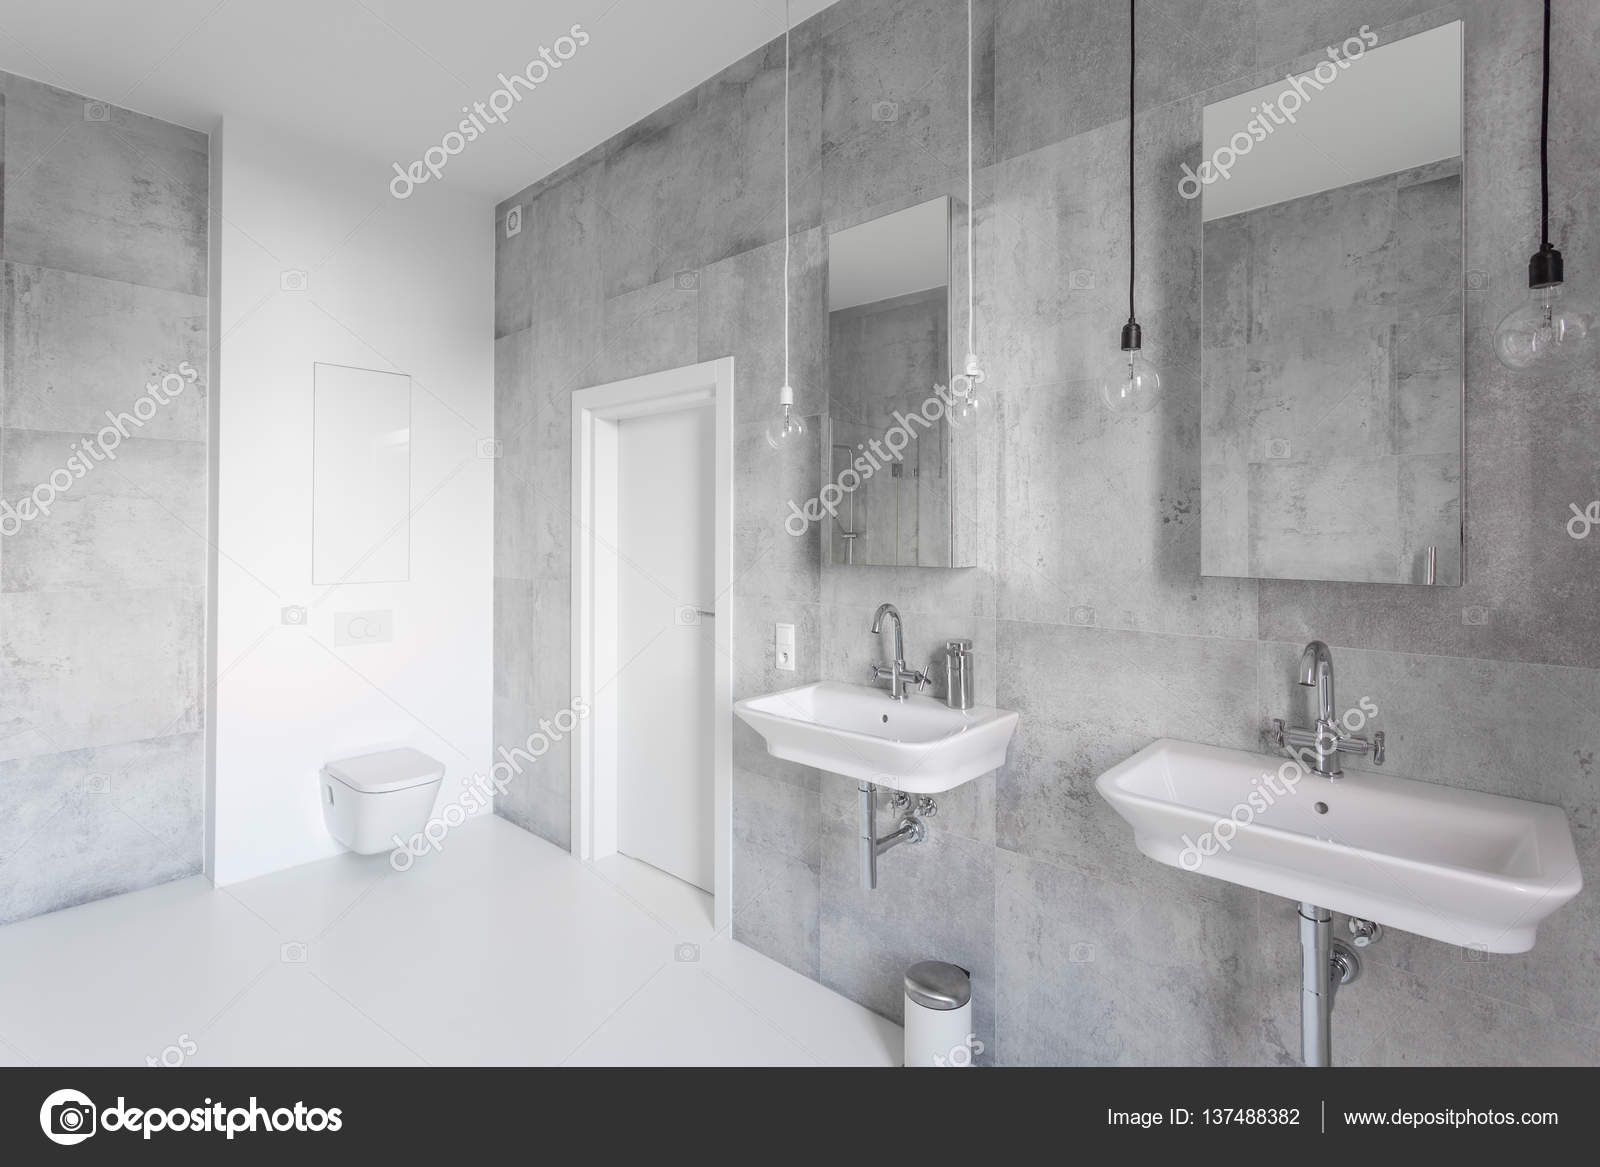 spacious all white bathroom. Spacious White Bathroom With Sinks \u2014 Stock Photo All Depositphotos